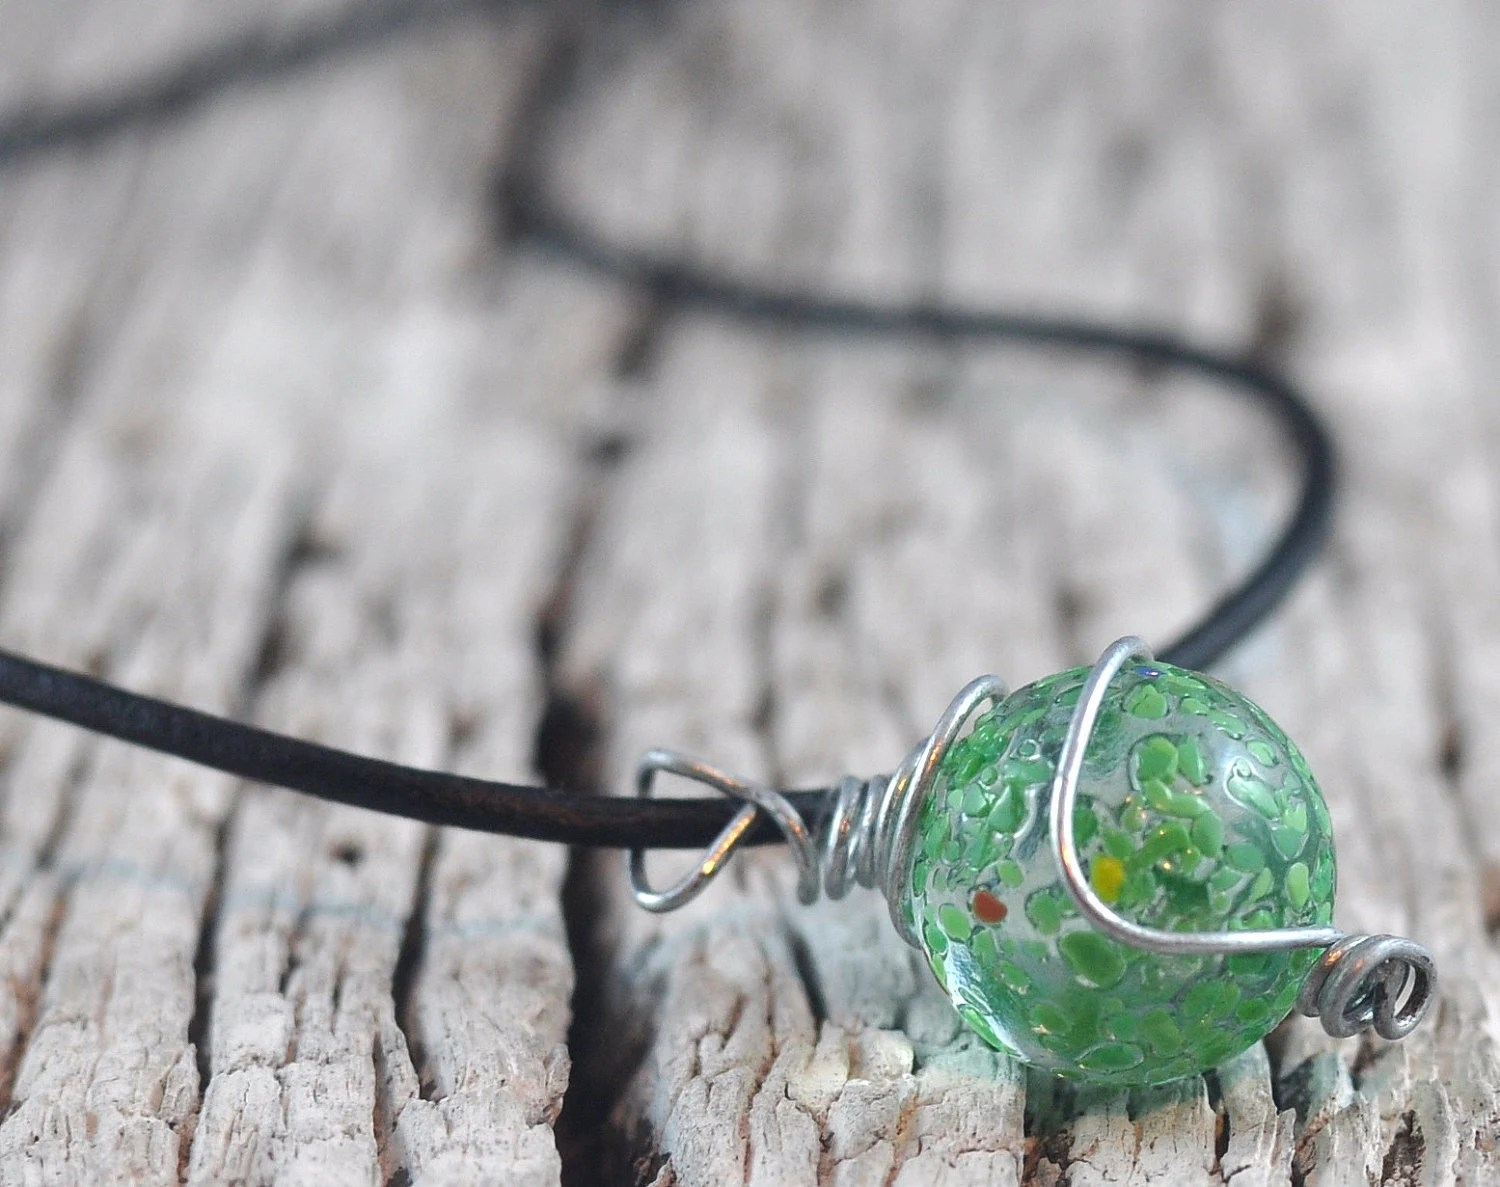 Green Marble Necklace  Wire Wrapped in Handmade Cage on Leather Thong in Handmade Felt Pouch. - DeeDeeDeesigns